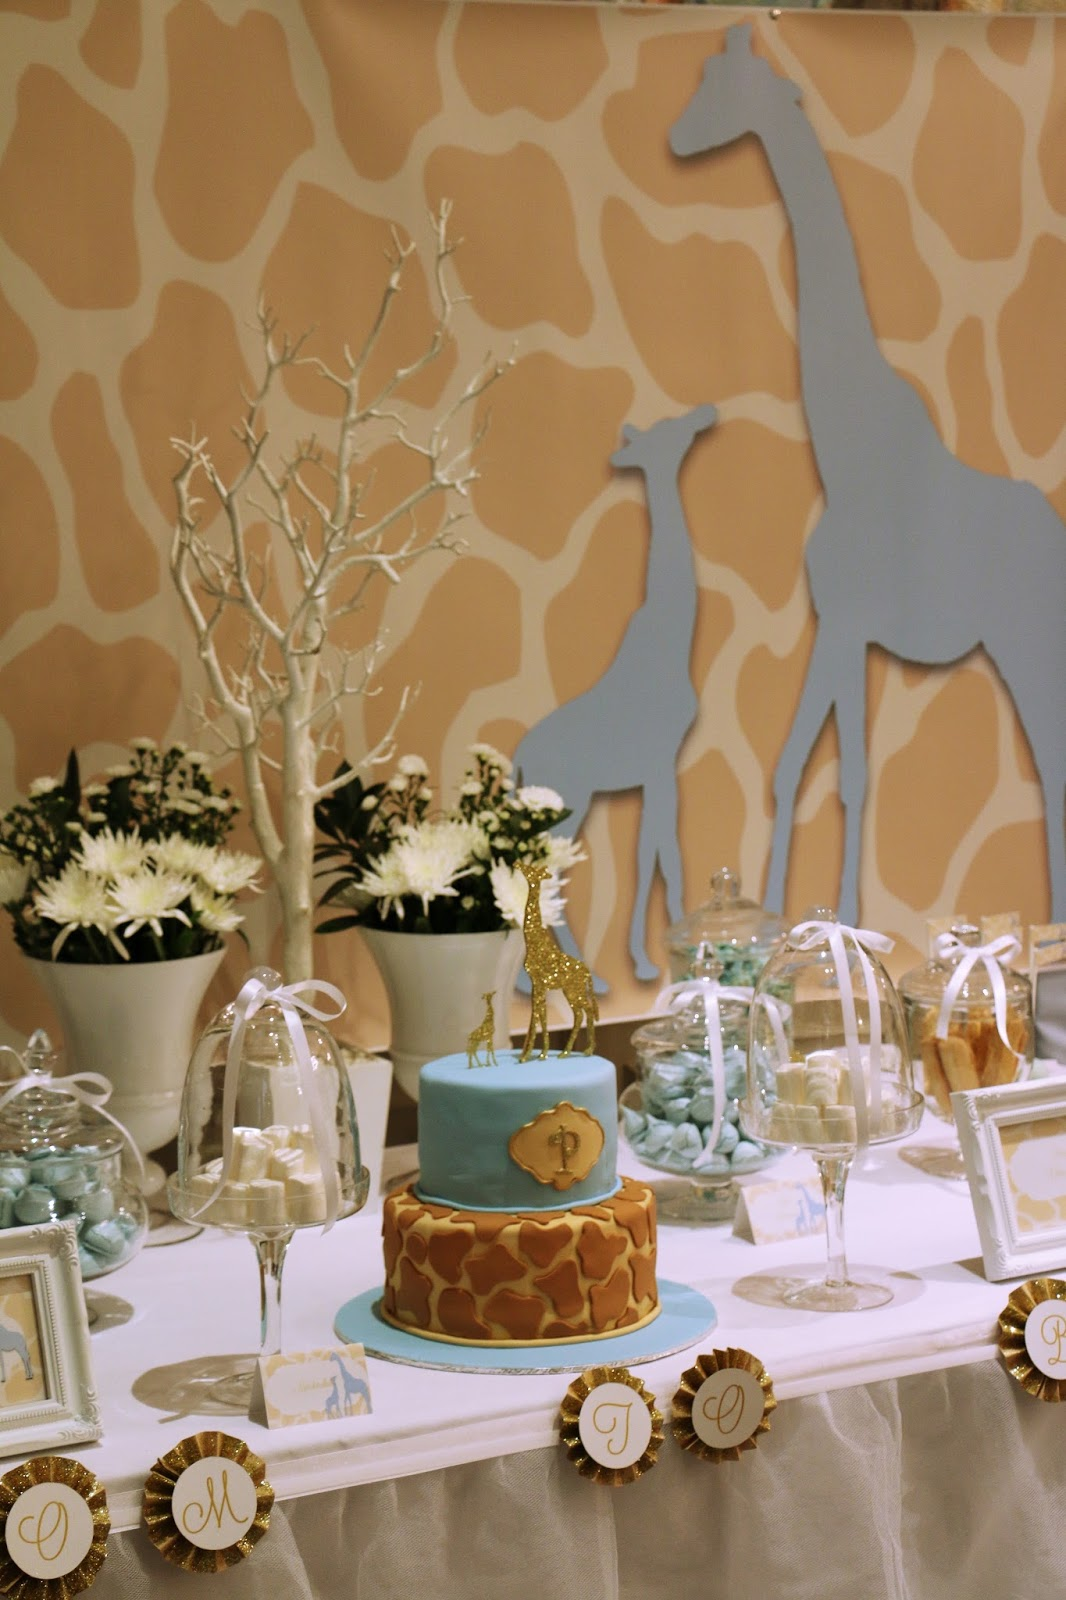 The Cutest Party on the Block Giraffe Baby Shower